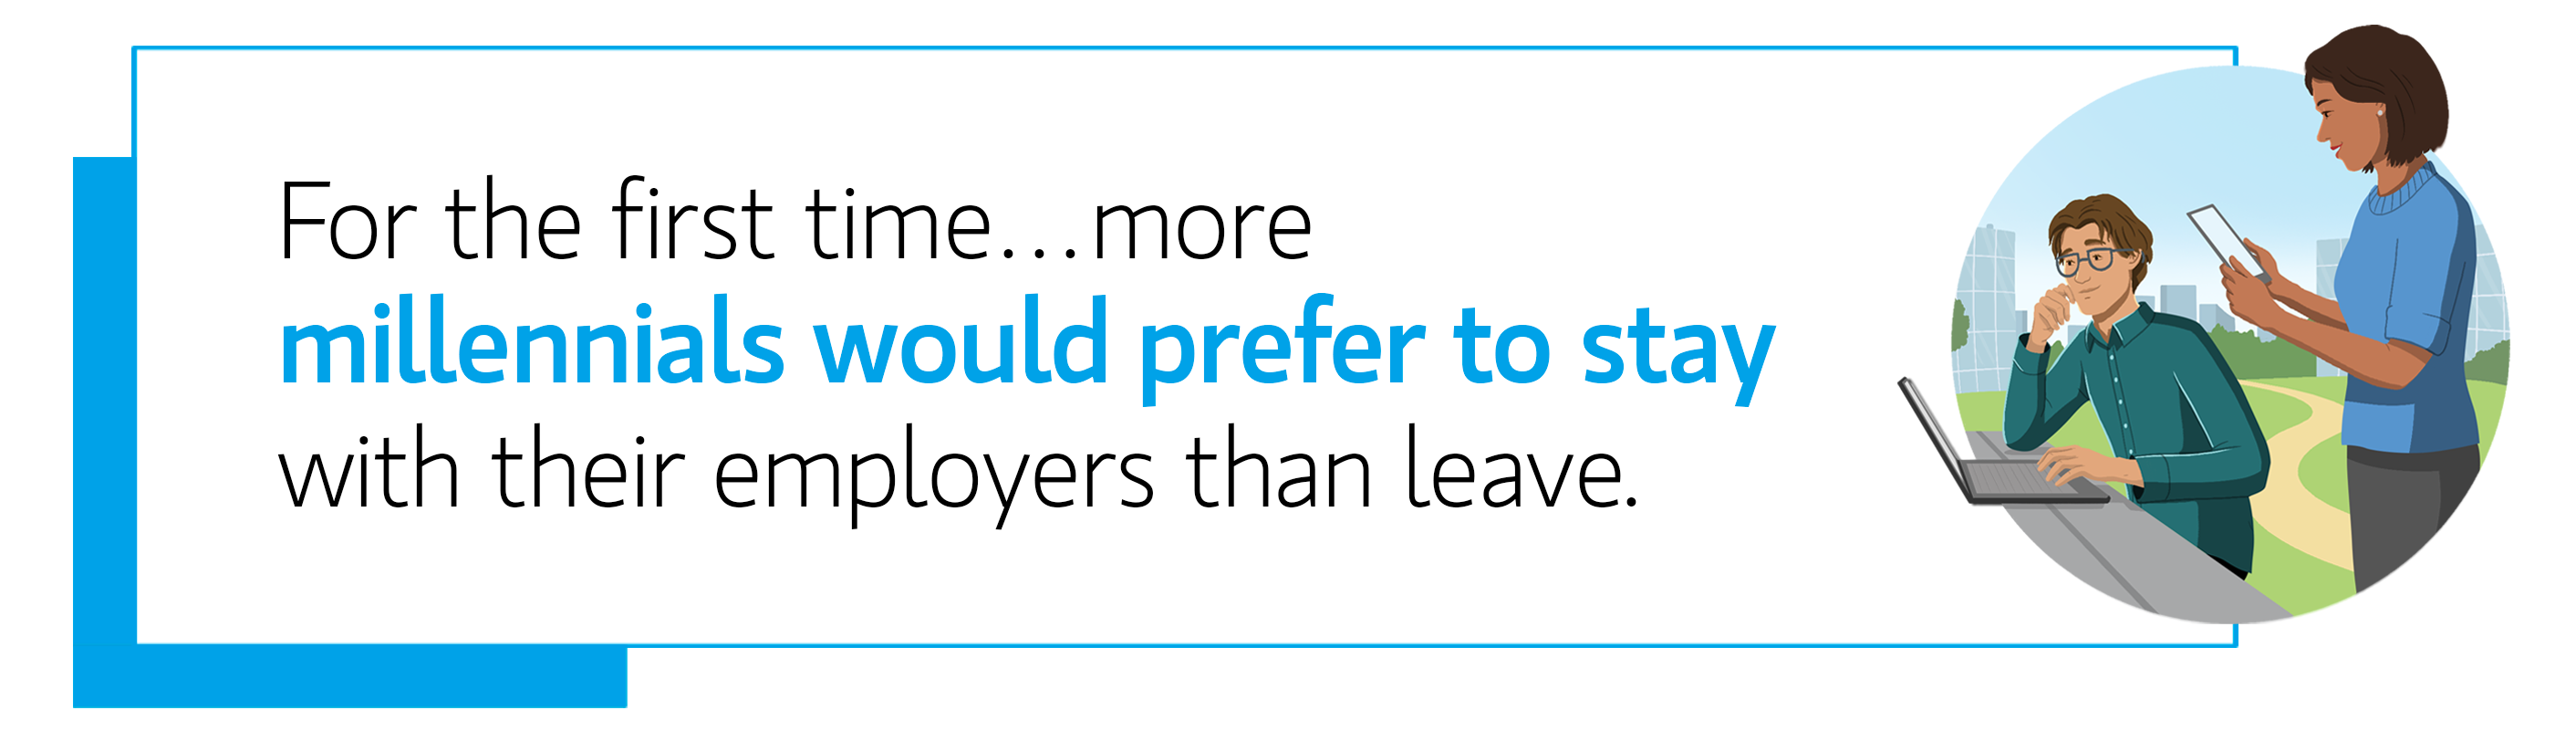 Quote: For the first time more millennials would prefer to stay with their employers than leave.